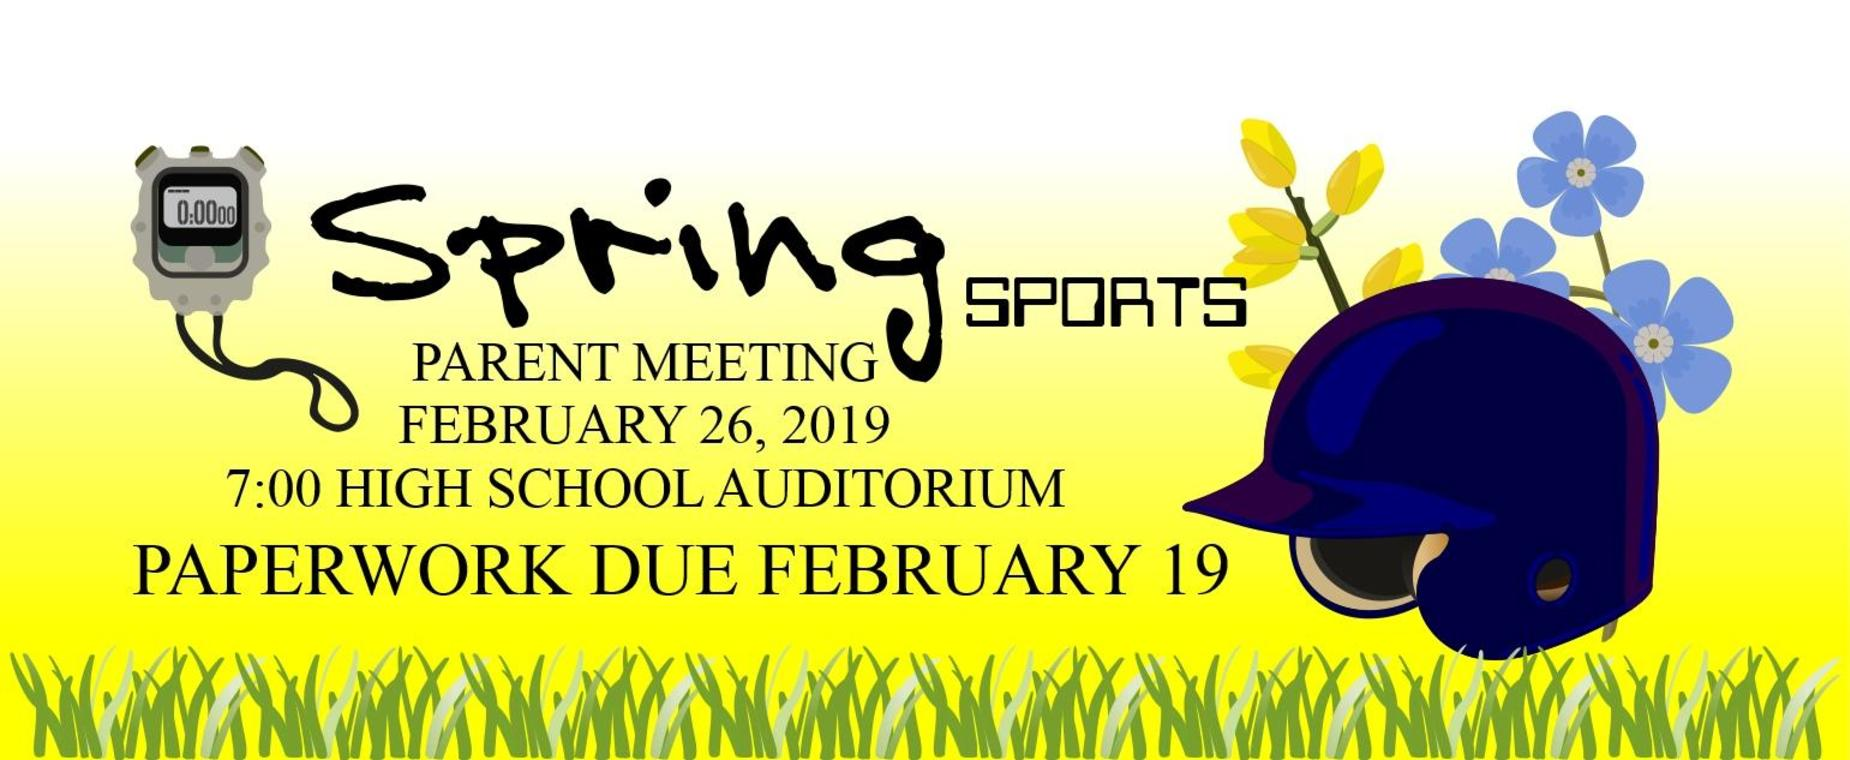 Spring Sports Meeting February 26 at 7 in the High school Auditorium